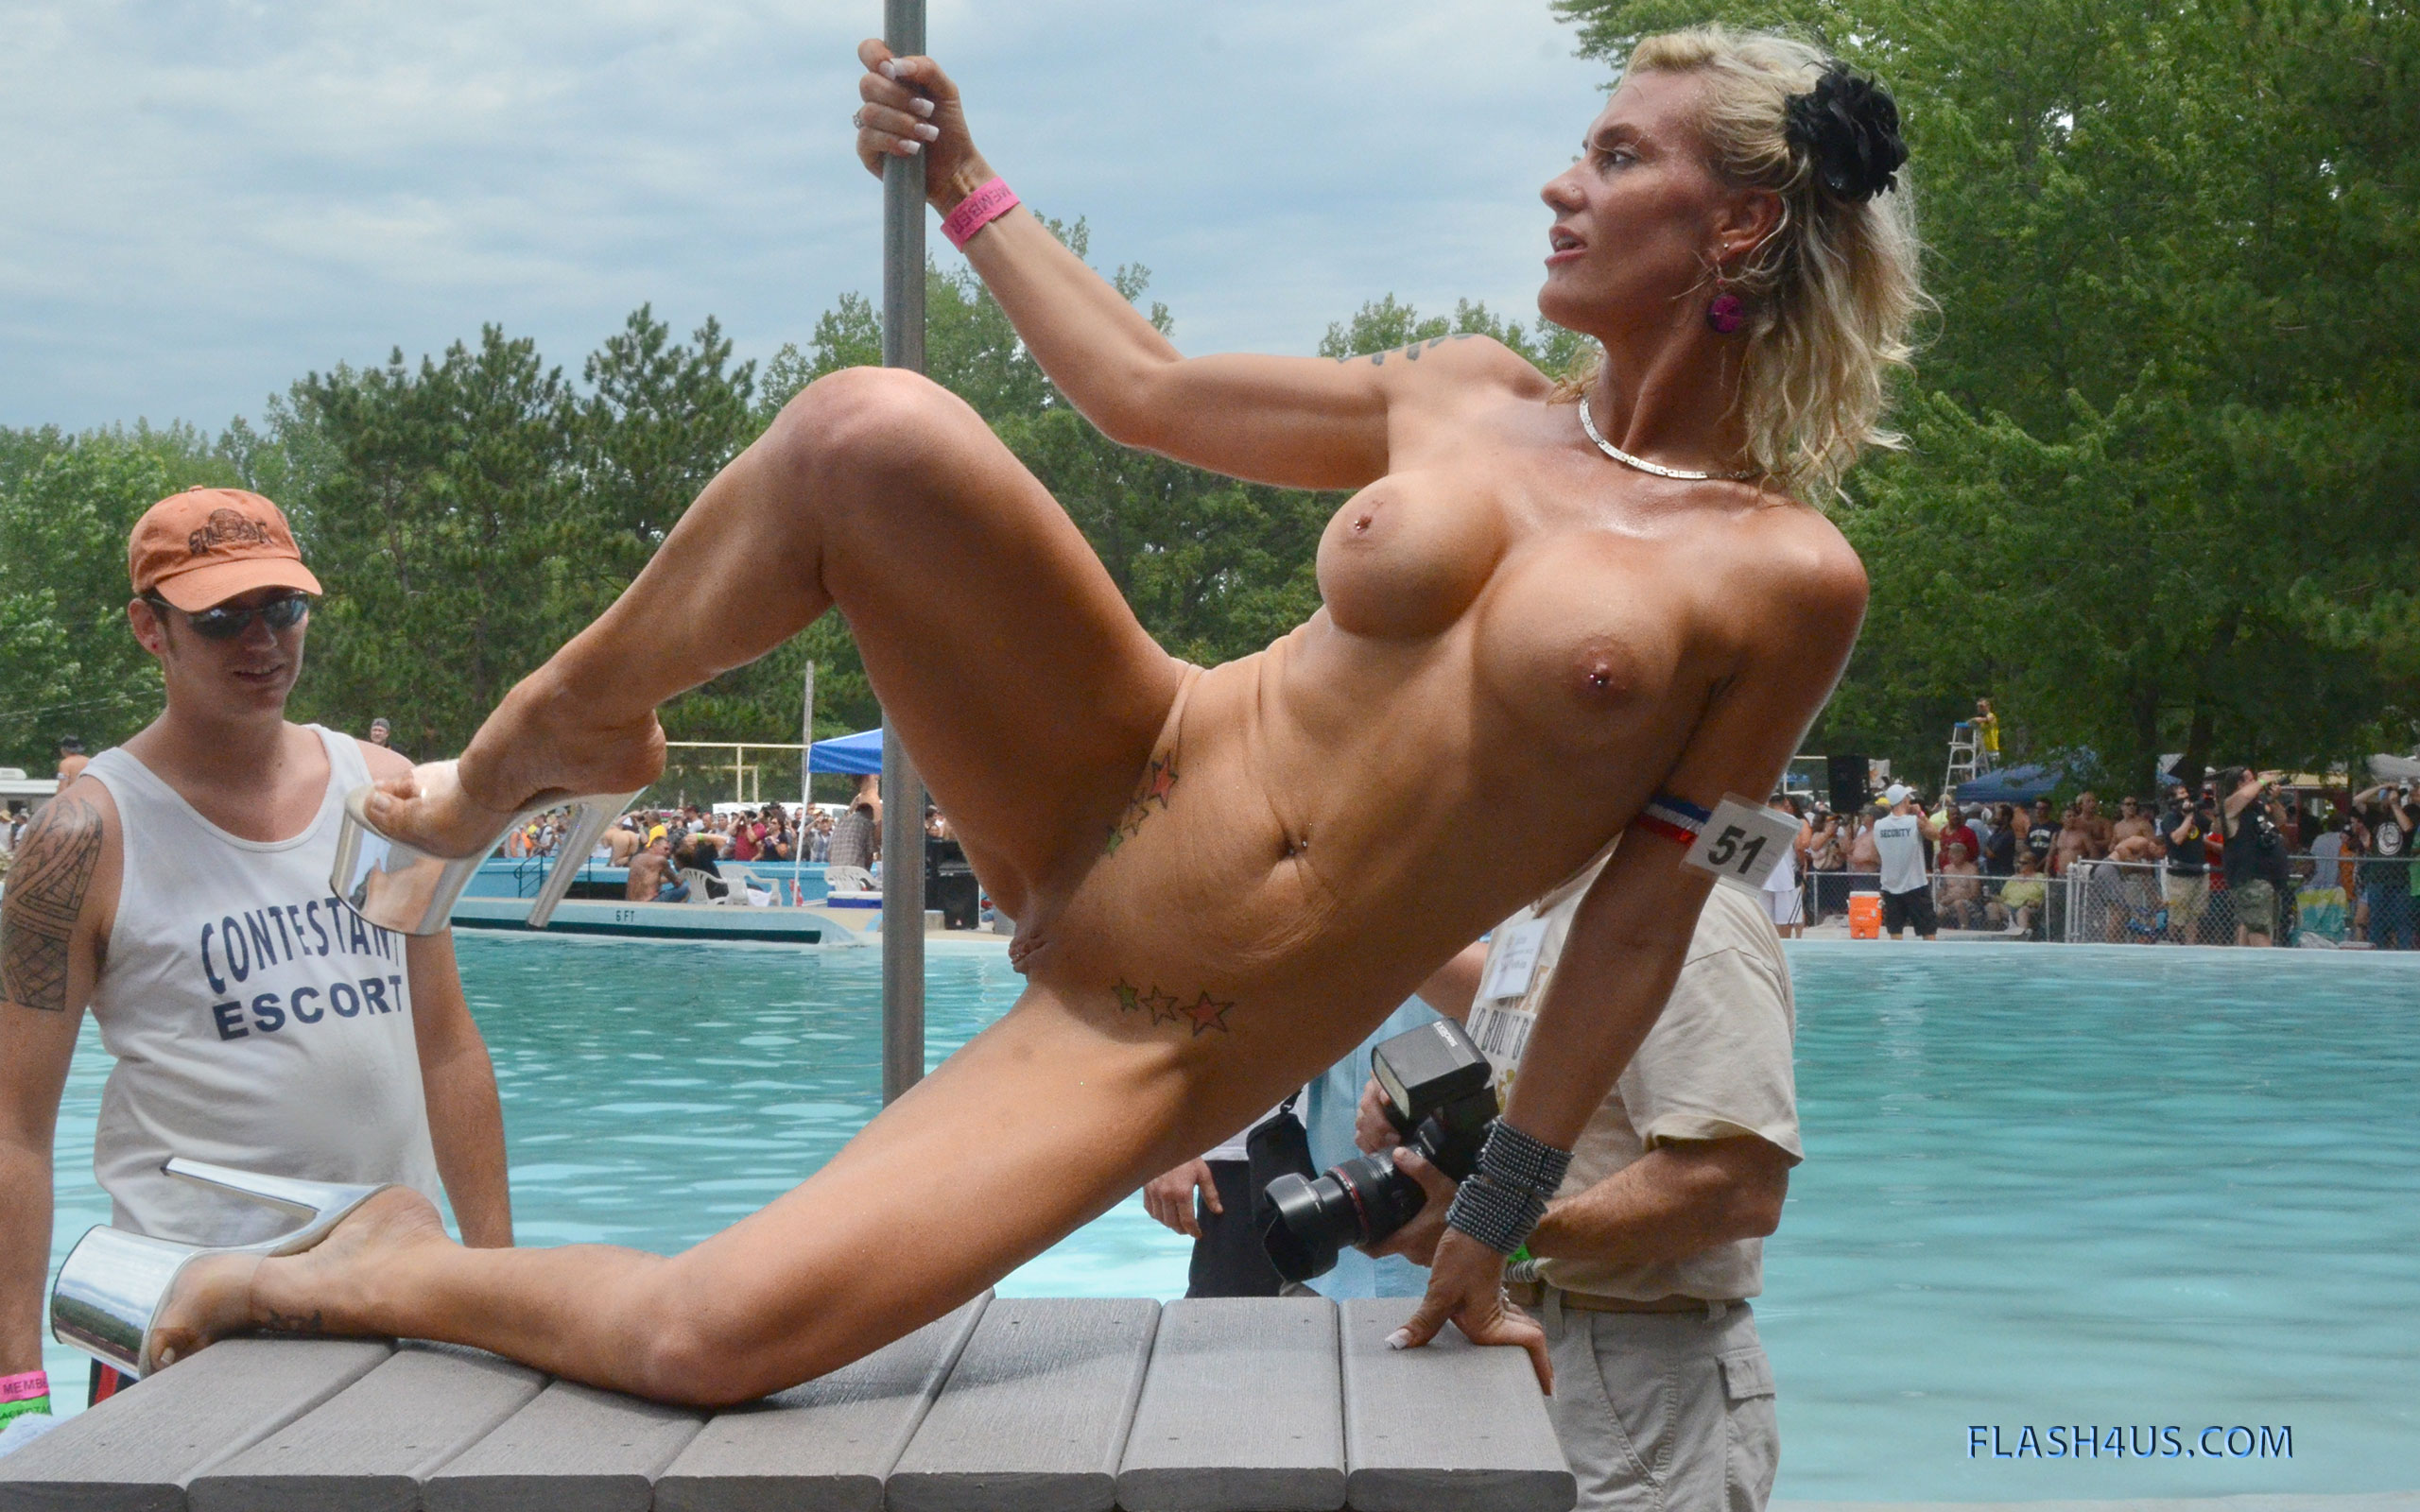 NUDES A POPPIN' 2012, PAGE 9 - Roselawn, IN - Update 845a - June 10 ...